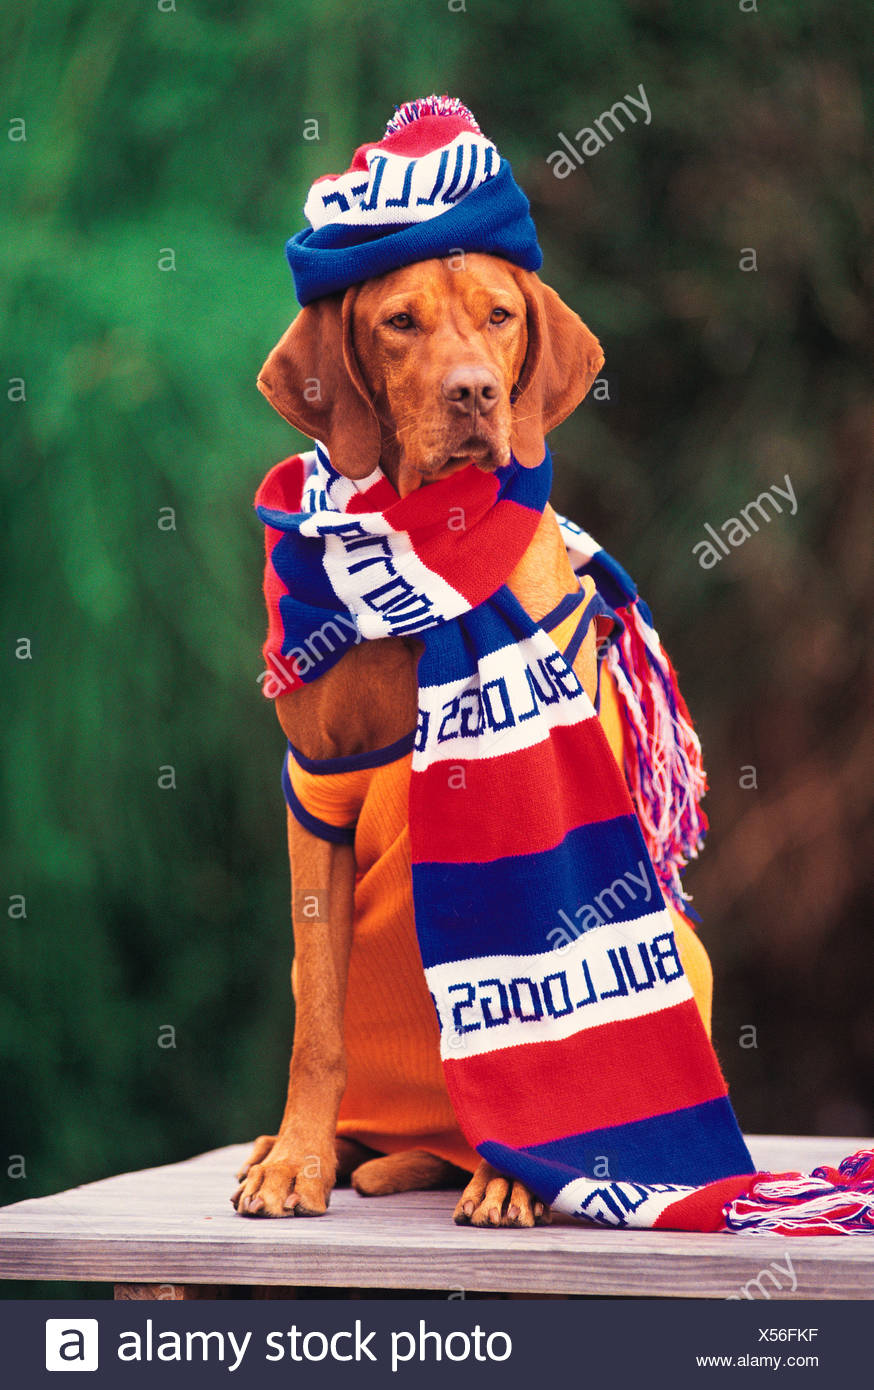 Animal chien Visla hongrois habillé en vêtements de l'équipe de football de supports. Concept de l'humour. Photo Stock